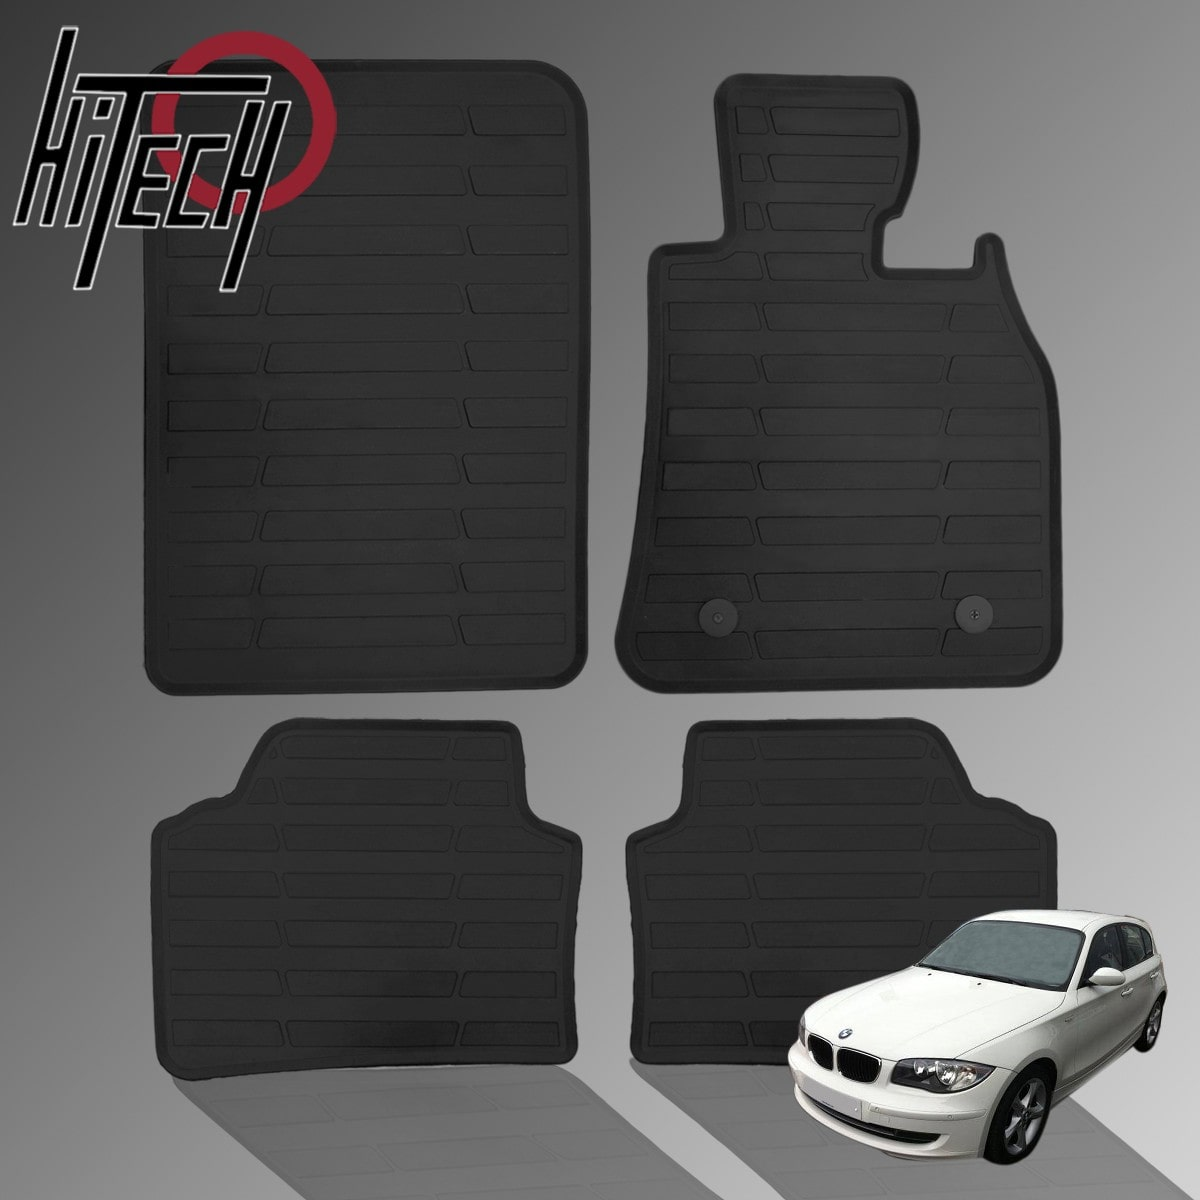 BMW 1 Series E87 Rubber Car Mats